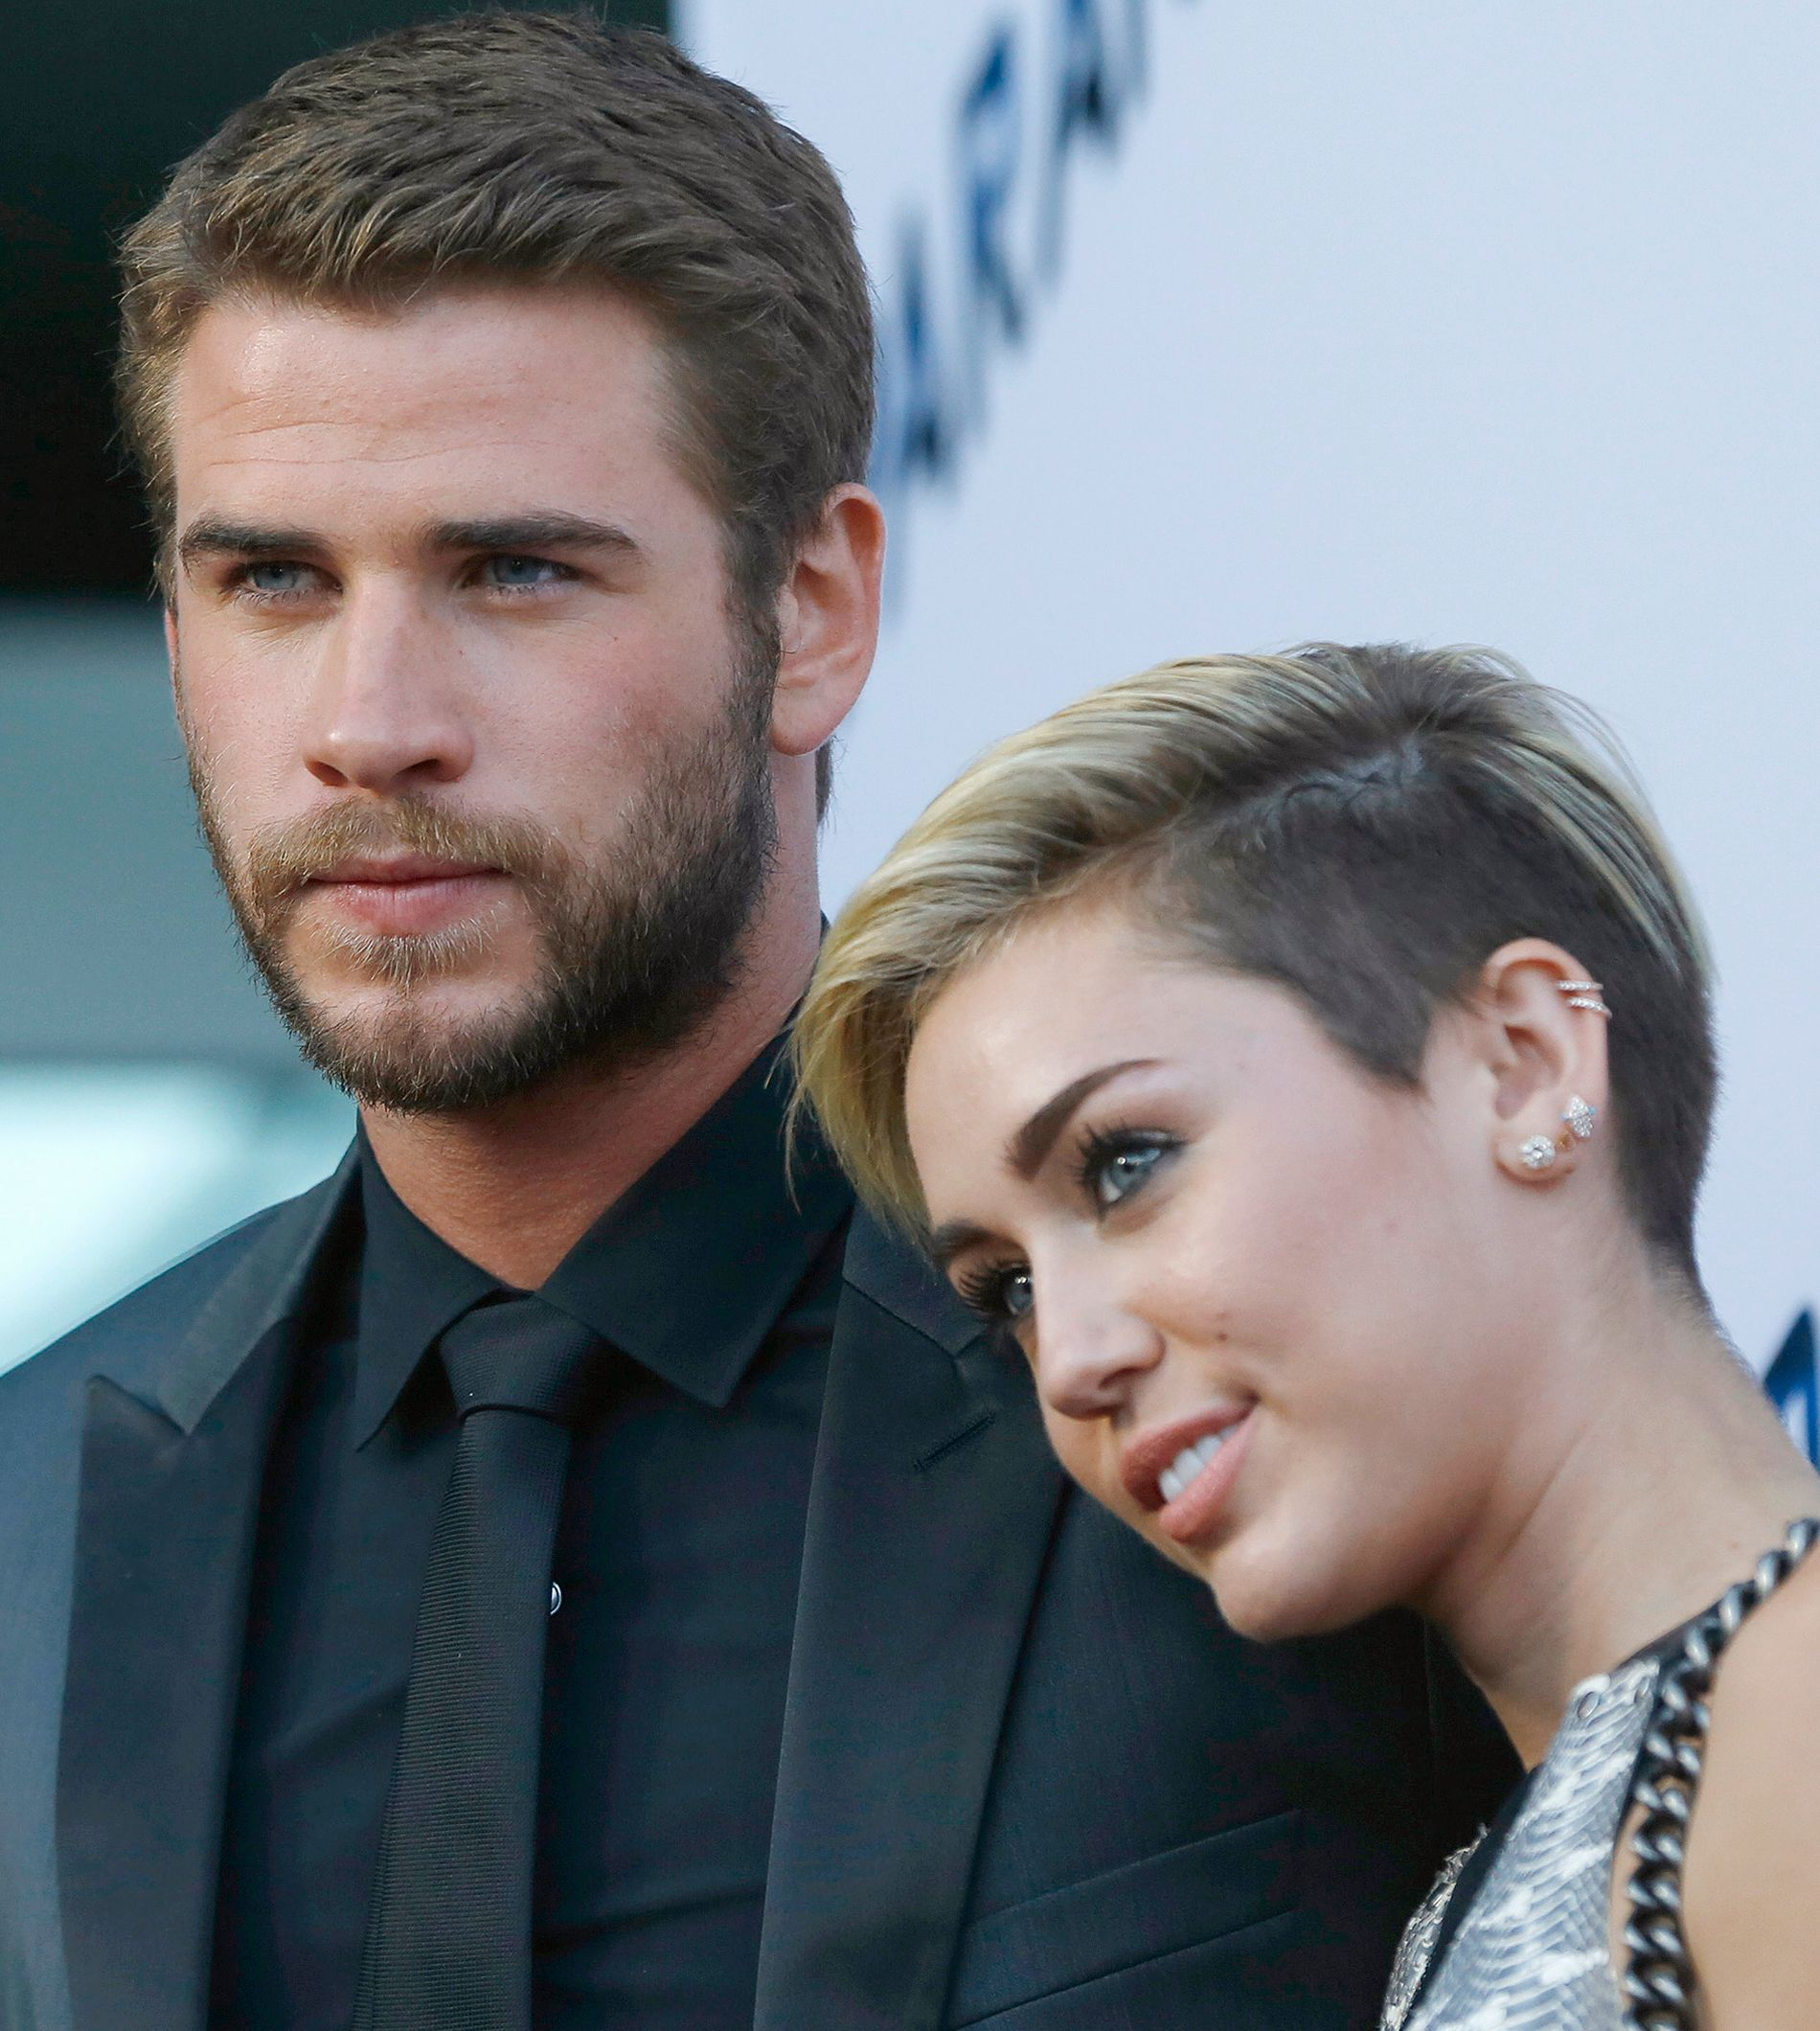 2013: Liam Hemsworth og Miley Cyrus i Hollywood like før bruddet.